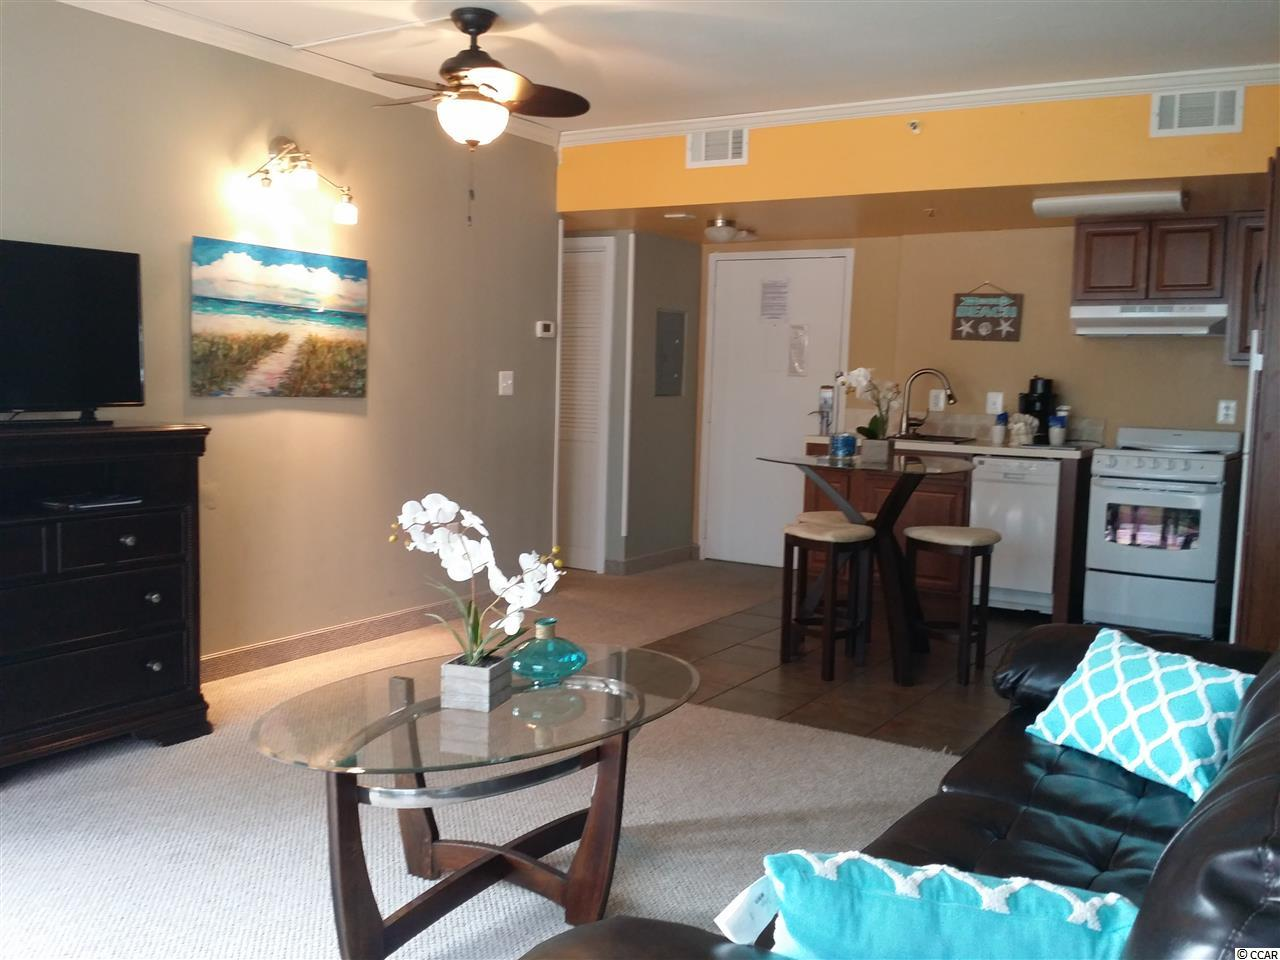 The Palace condo for sale in Myrtle Beach, SC